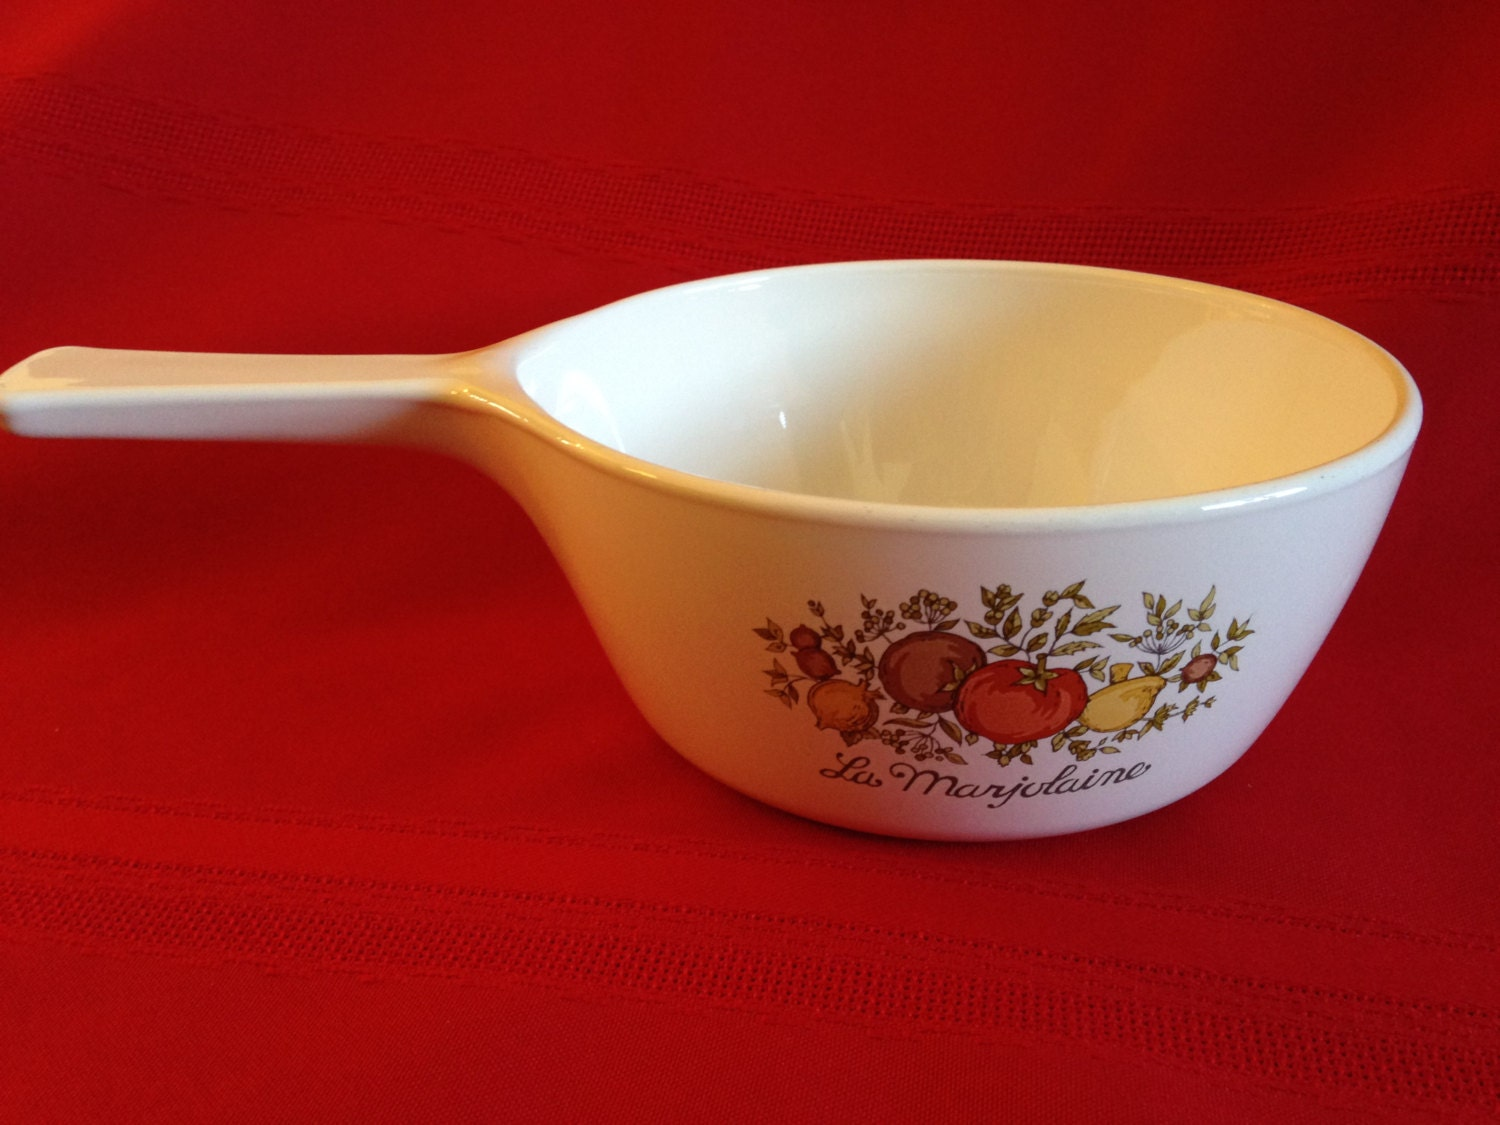 Vintage Corning Ware Baking Dish With Handle La Marjolaine